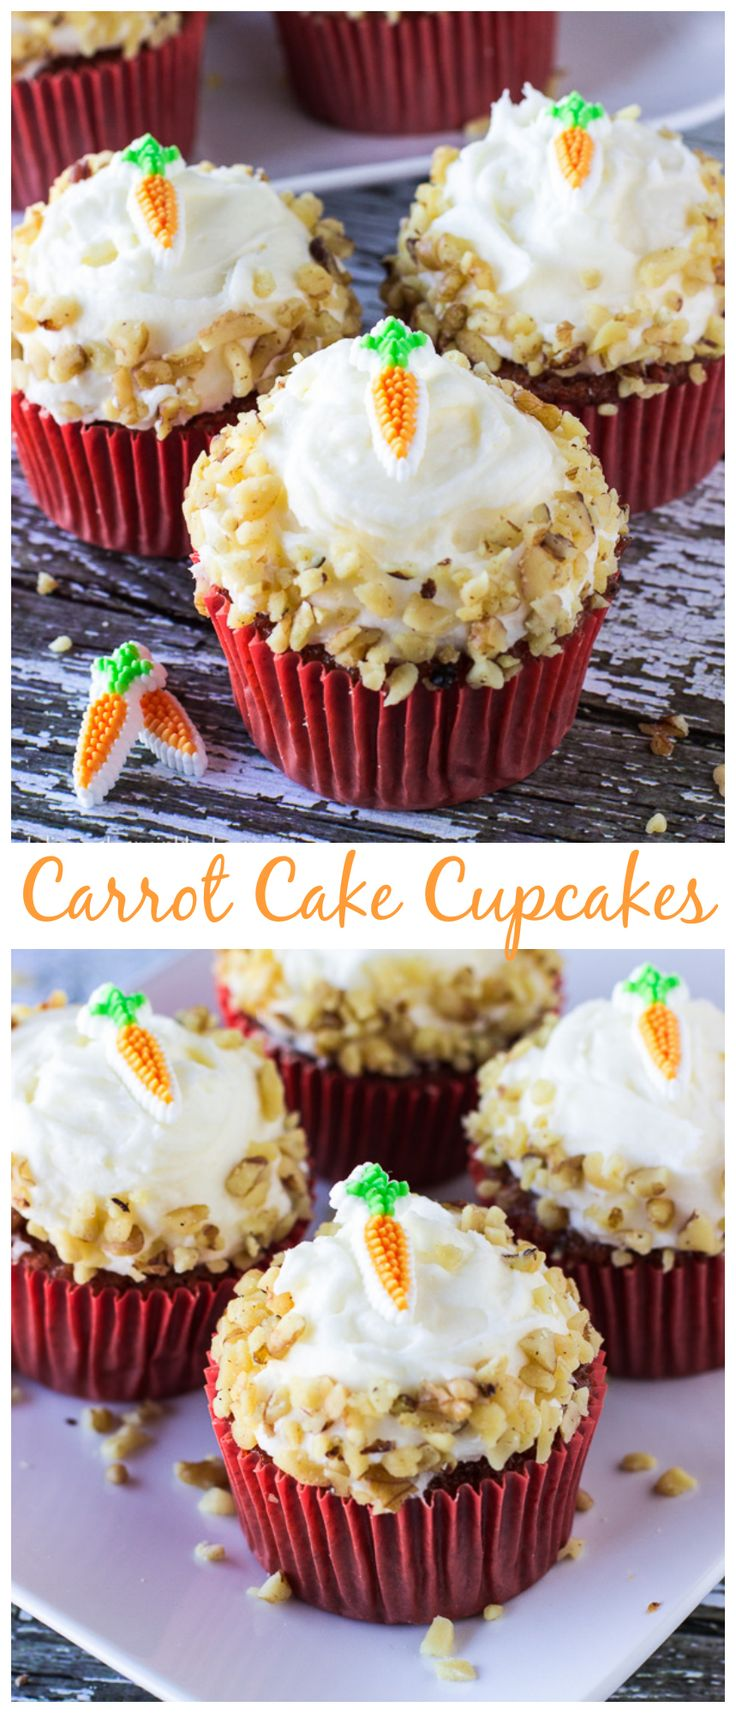 ... carrot cake cupcakes topped with fluffy cream cheese frosting